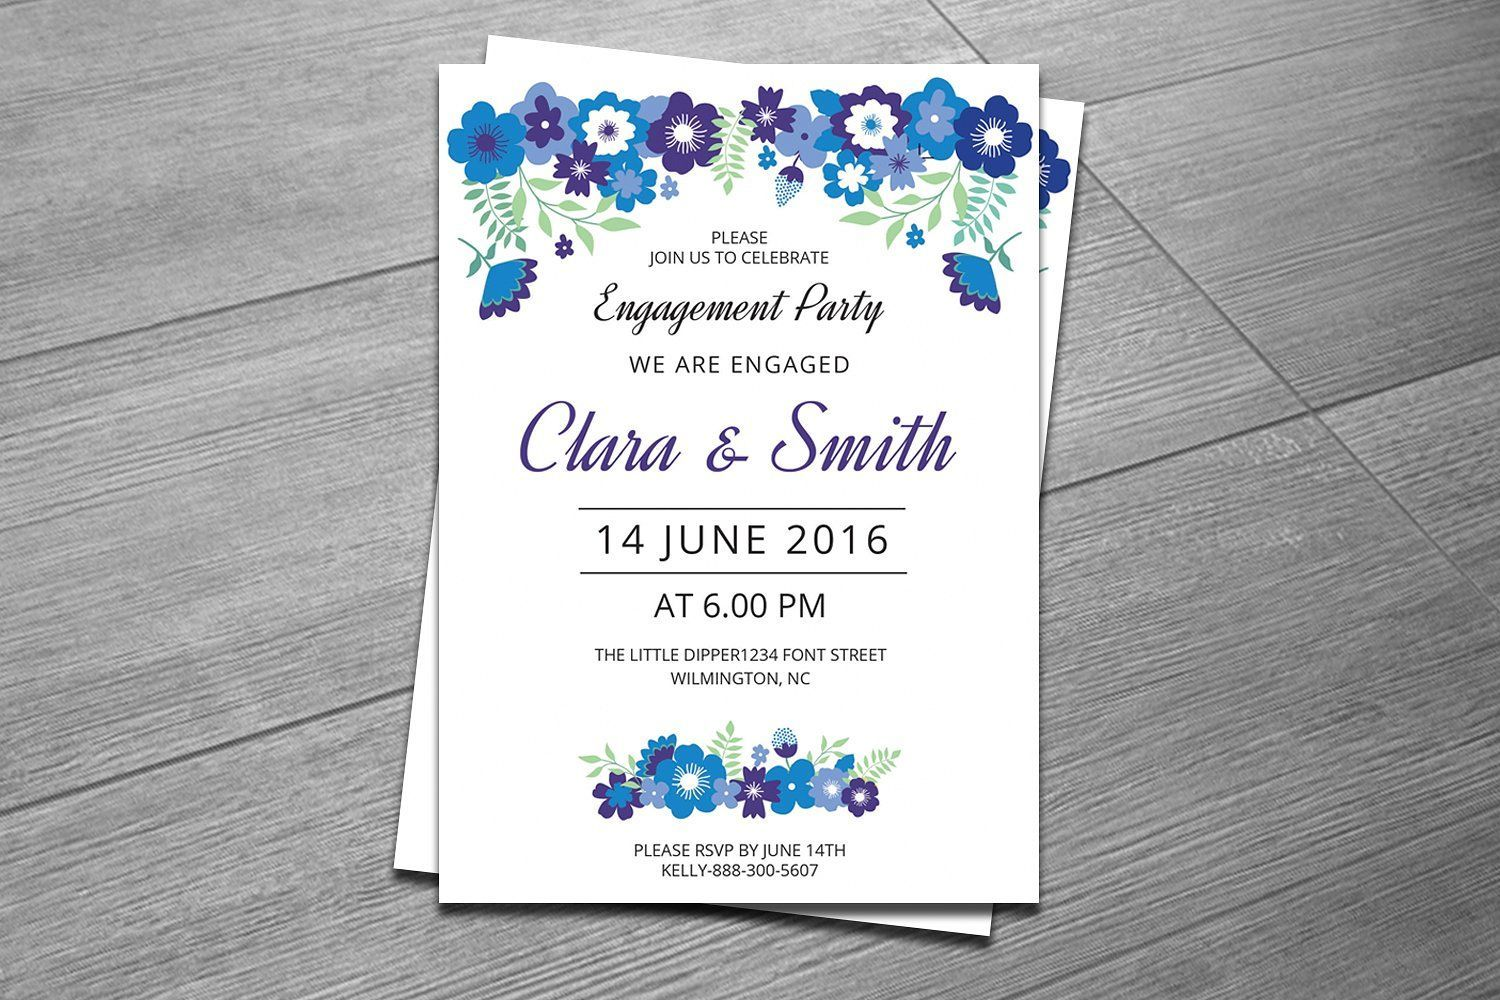 Engagement Party Invitation Template by retrographix on